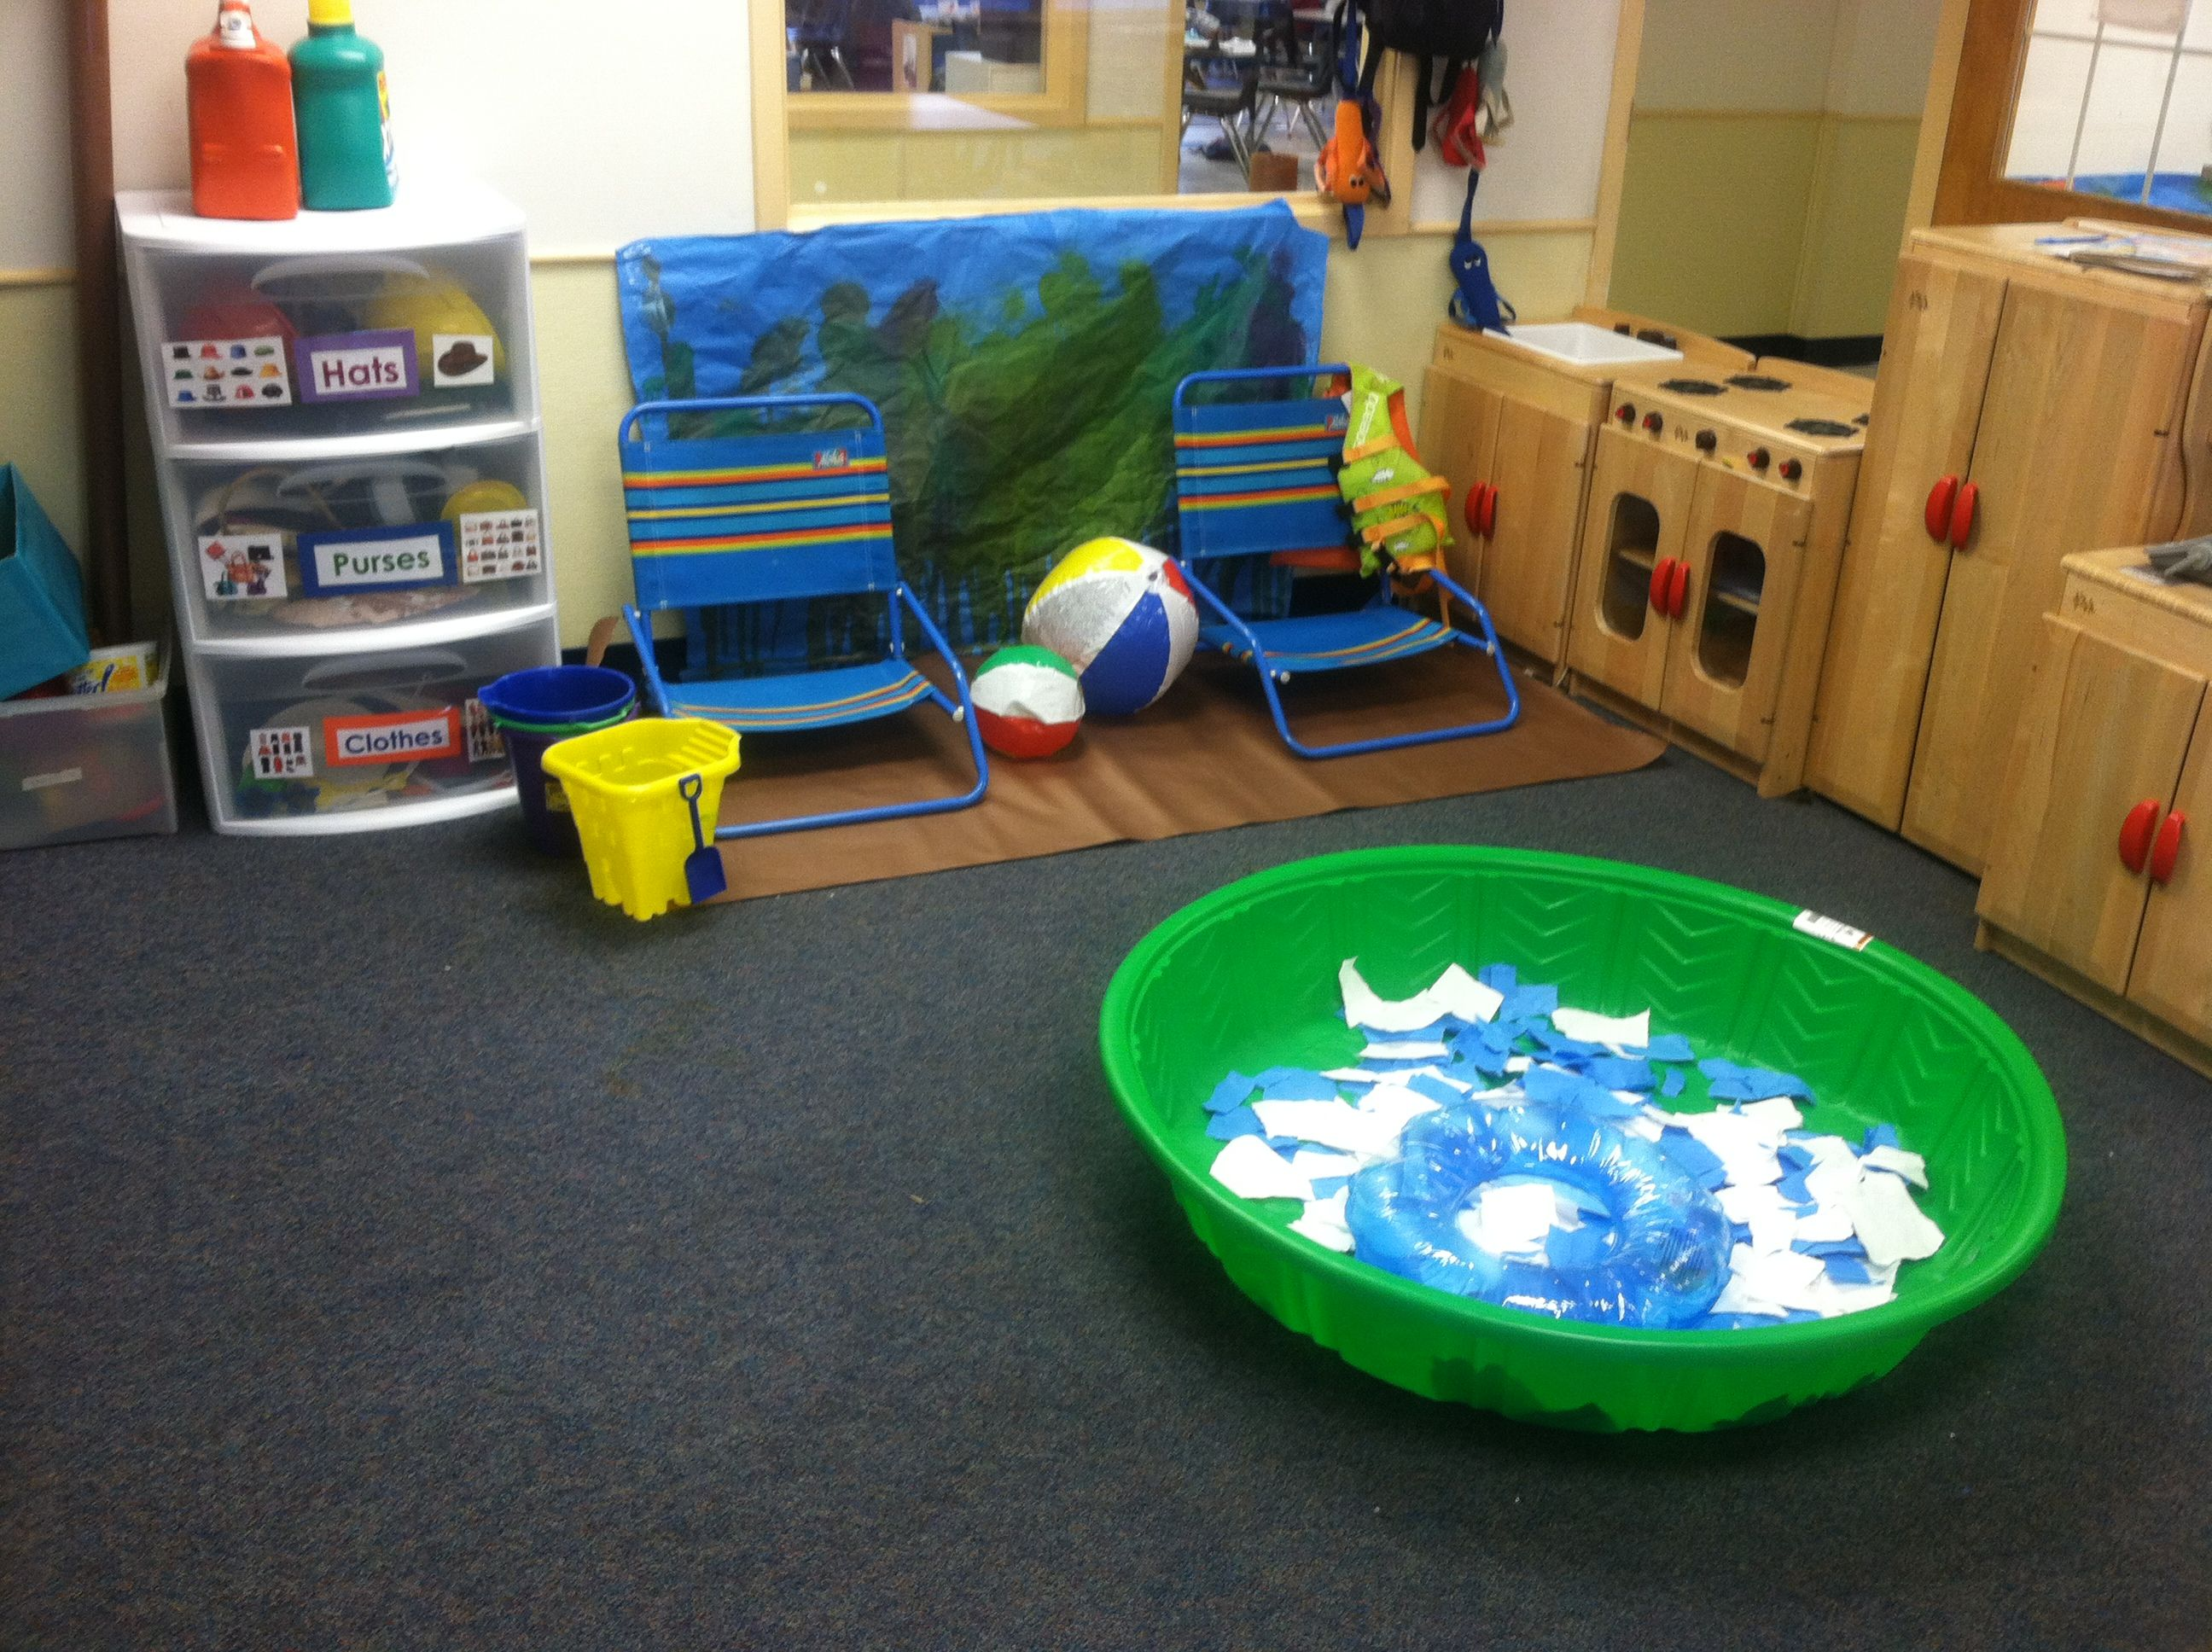 What to expect in preschool: the classroom